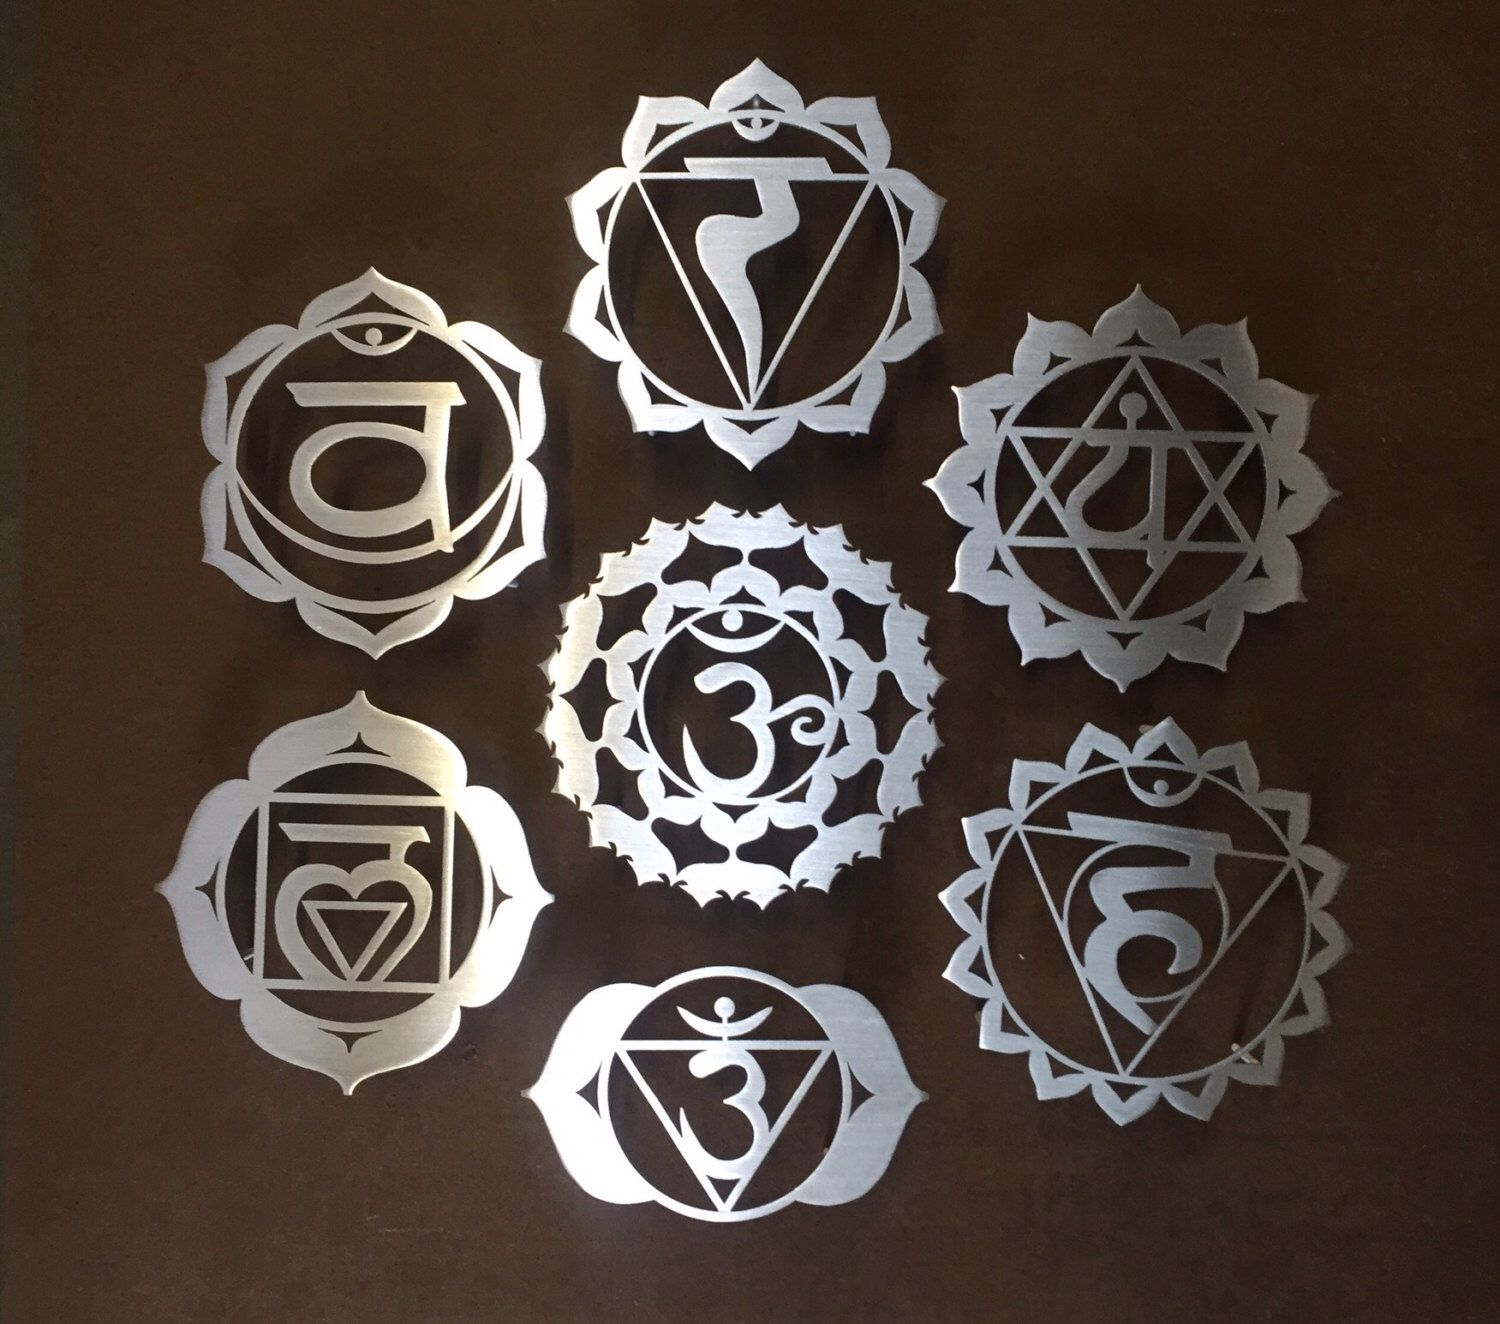 Chakra Symbols Metal Wall Art By Inspiremetals On Etsy Httpswww